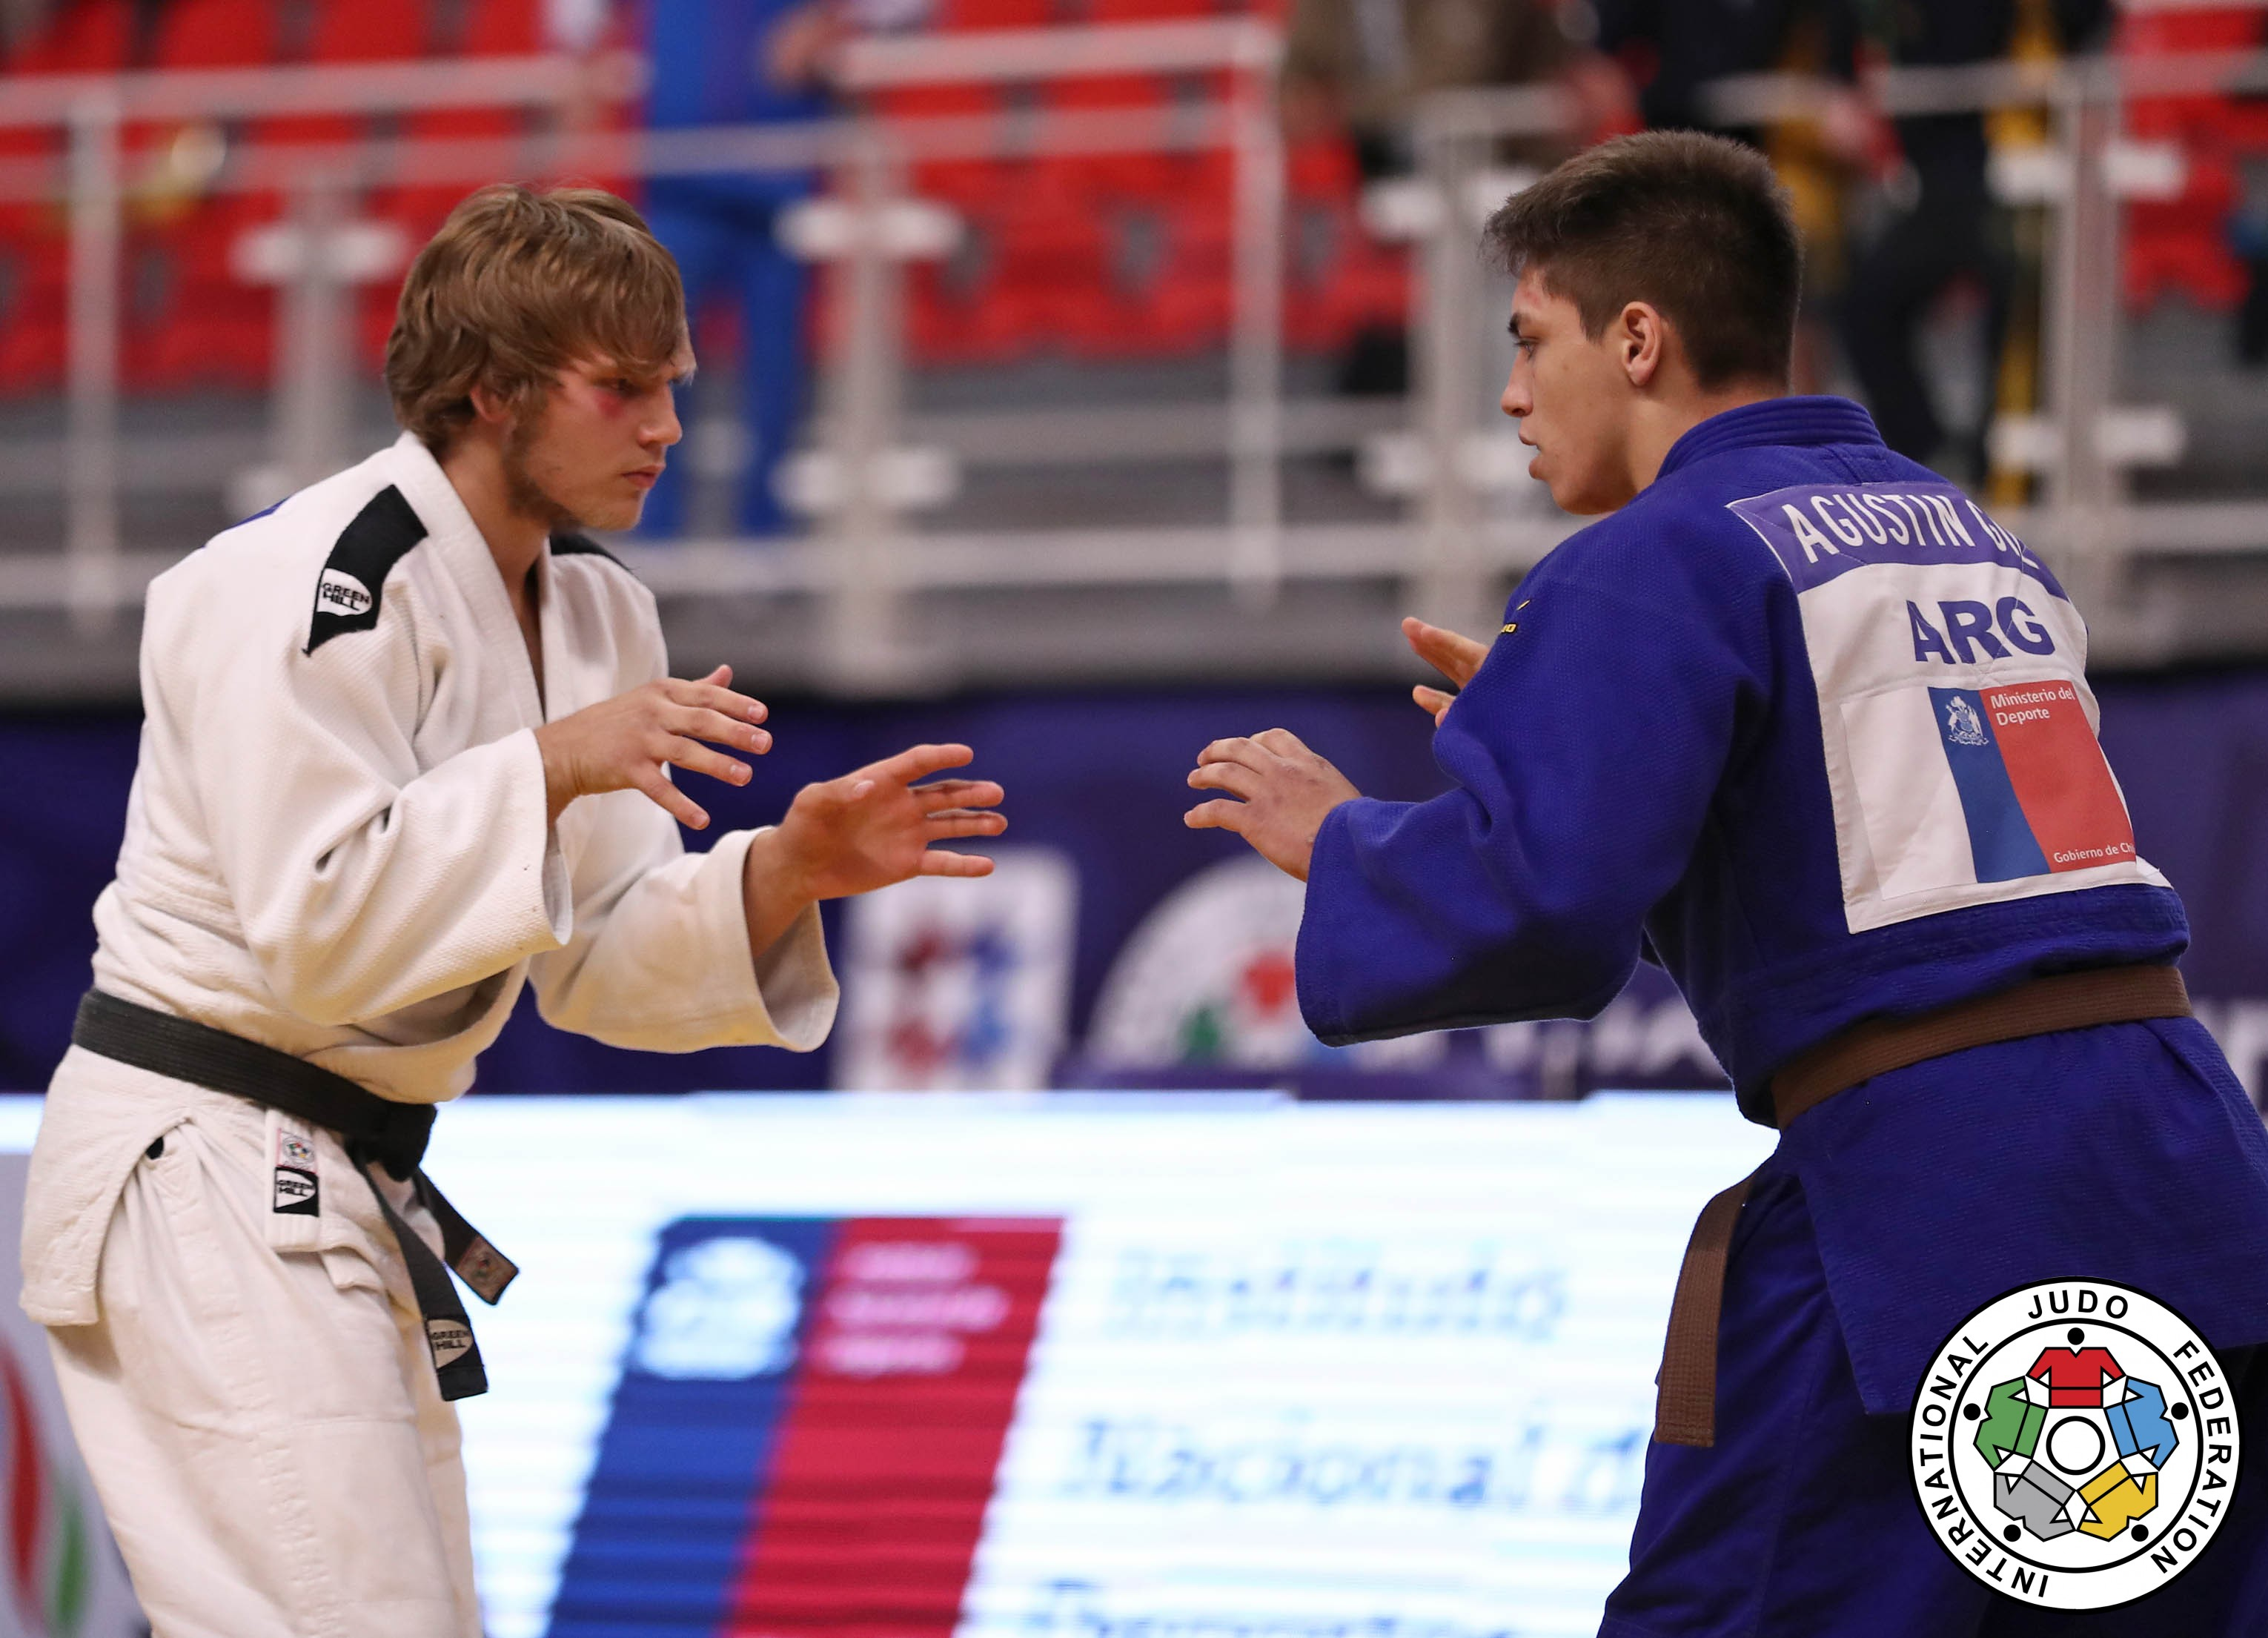 20170811_chile_wchu18_ijf_81_matveiciuc_eugen_gil_agustin